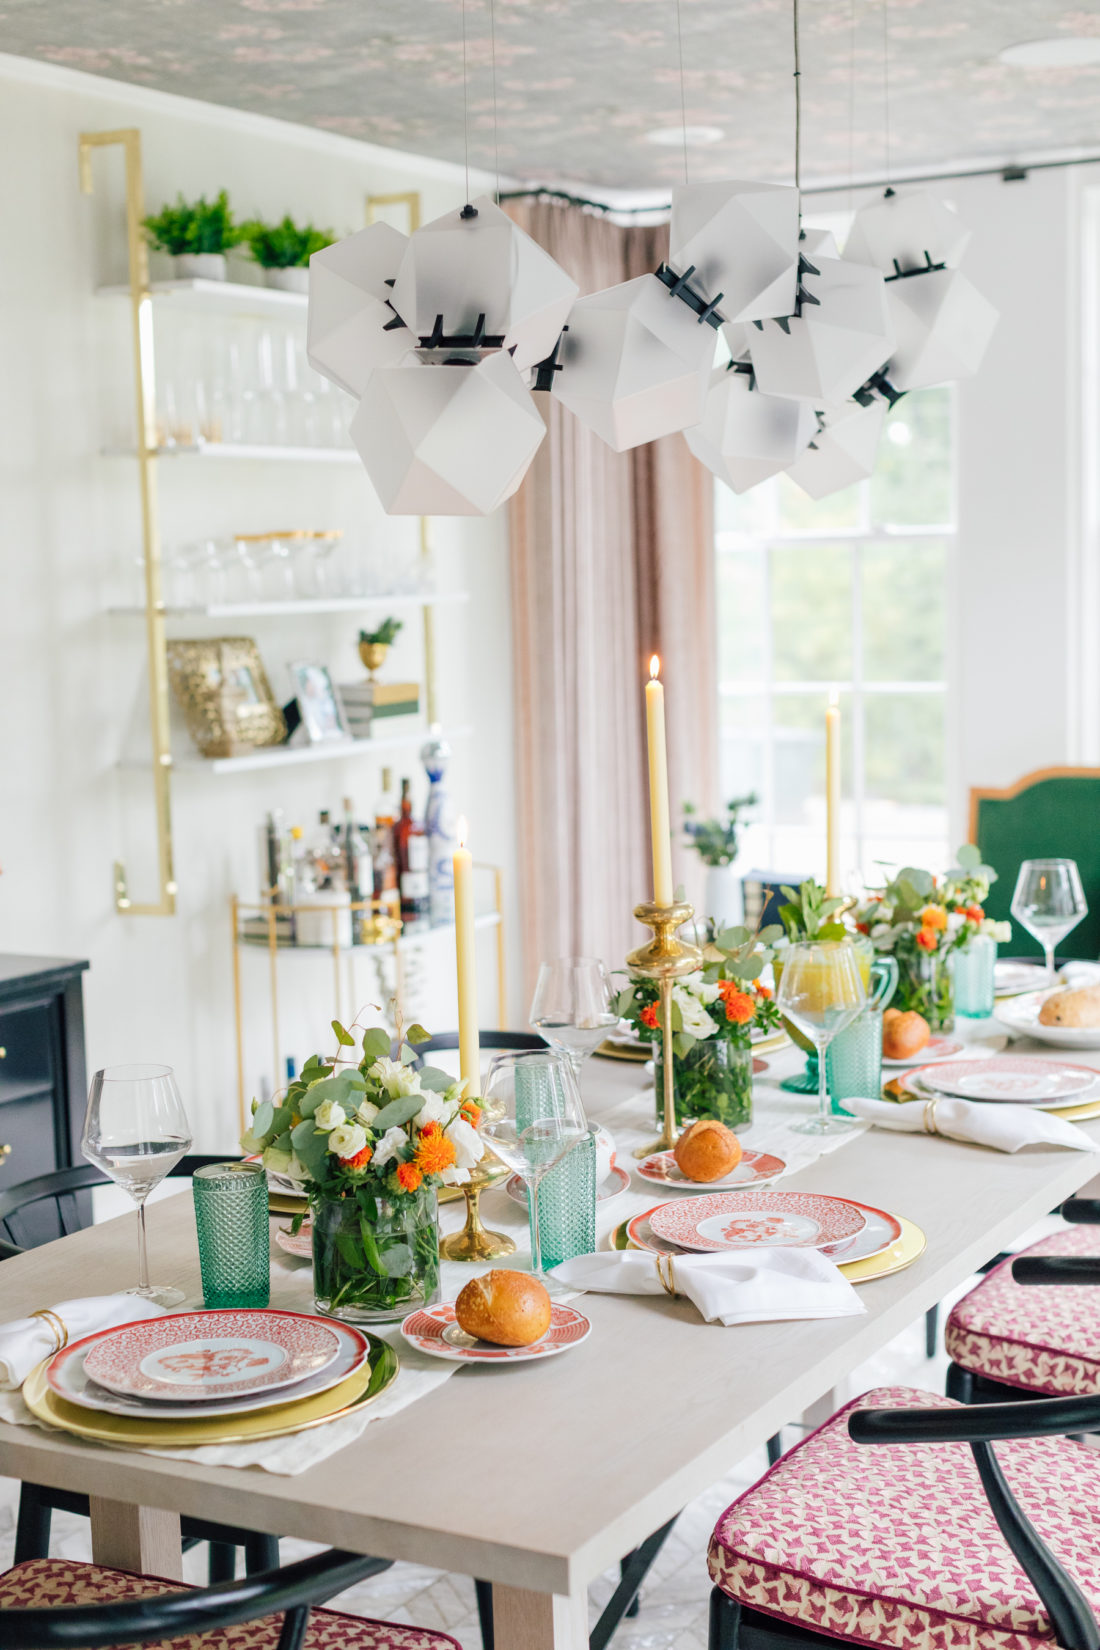 Eva Amurri Martino's 2019 Thanksgiving Table Decor